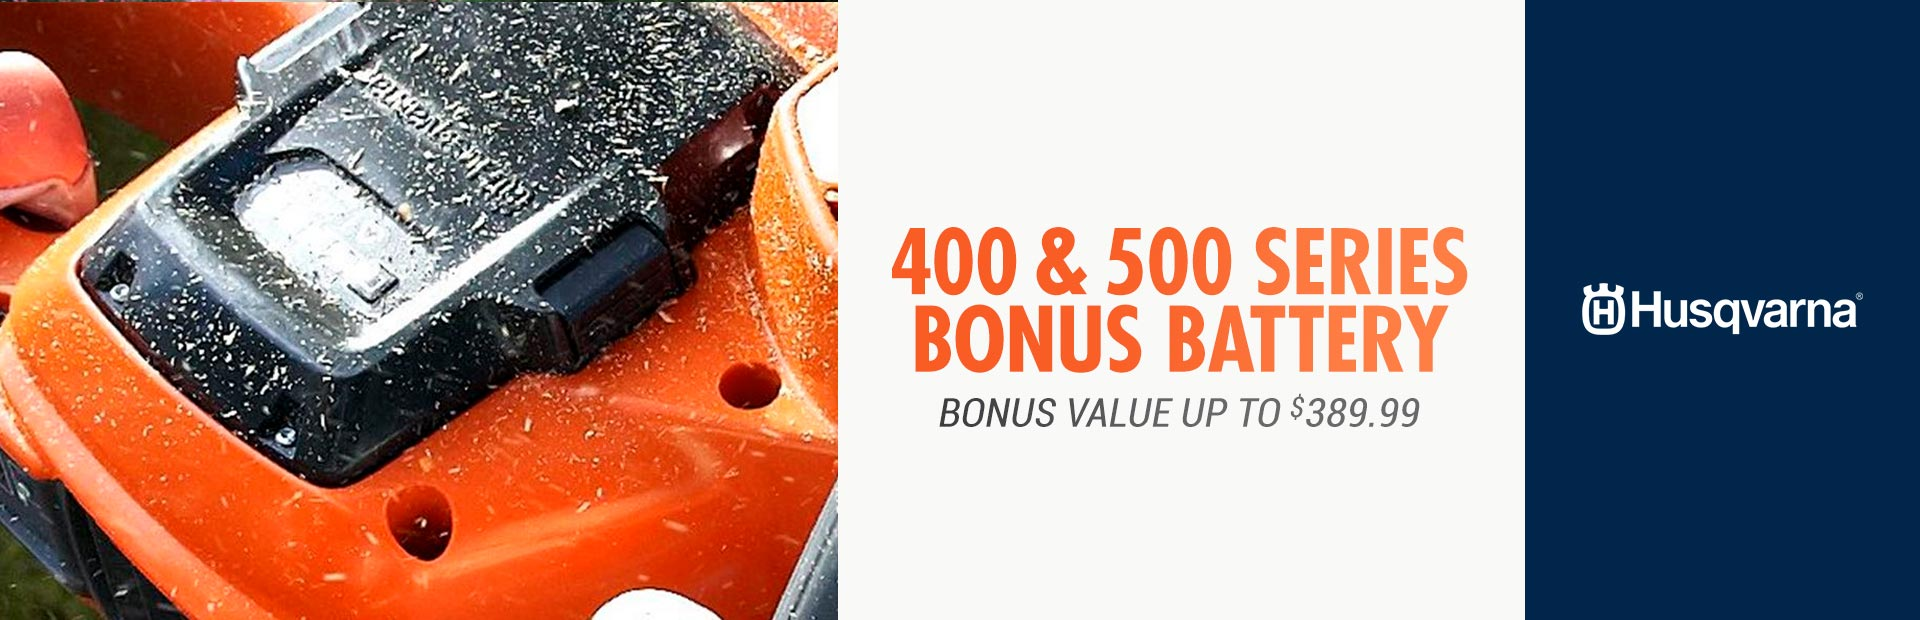 Husqvarna: 400 And 500 Series Bonus Battery Promotion